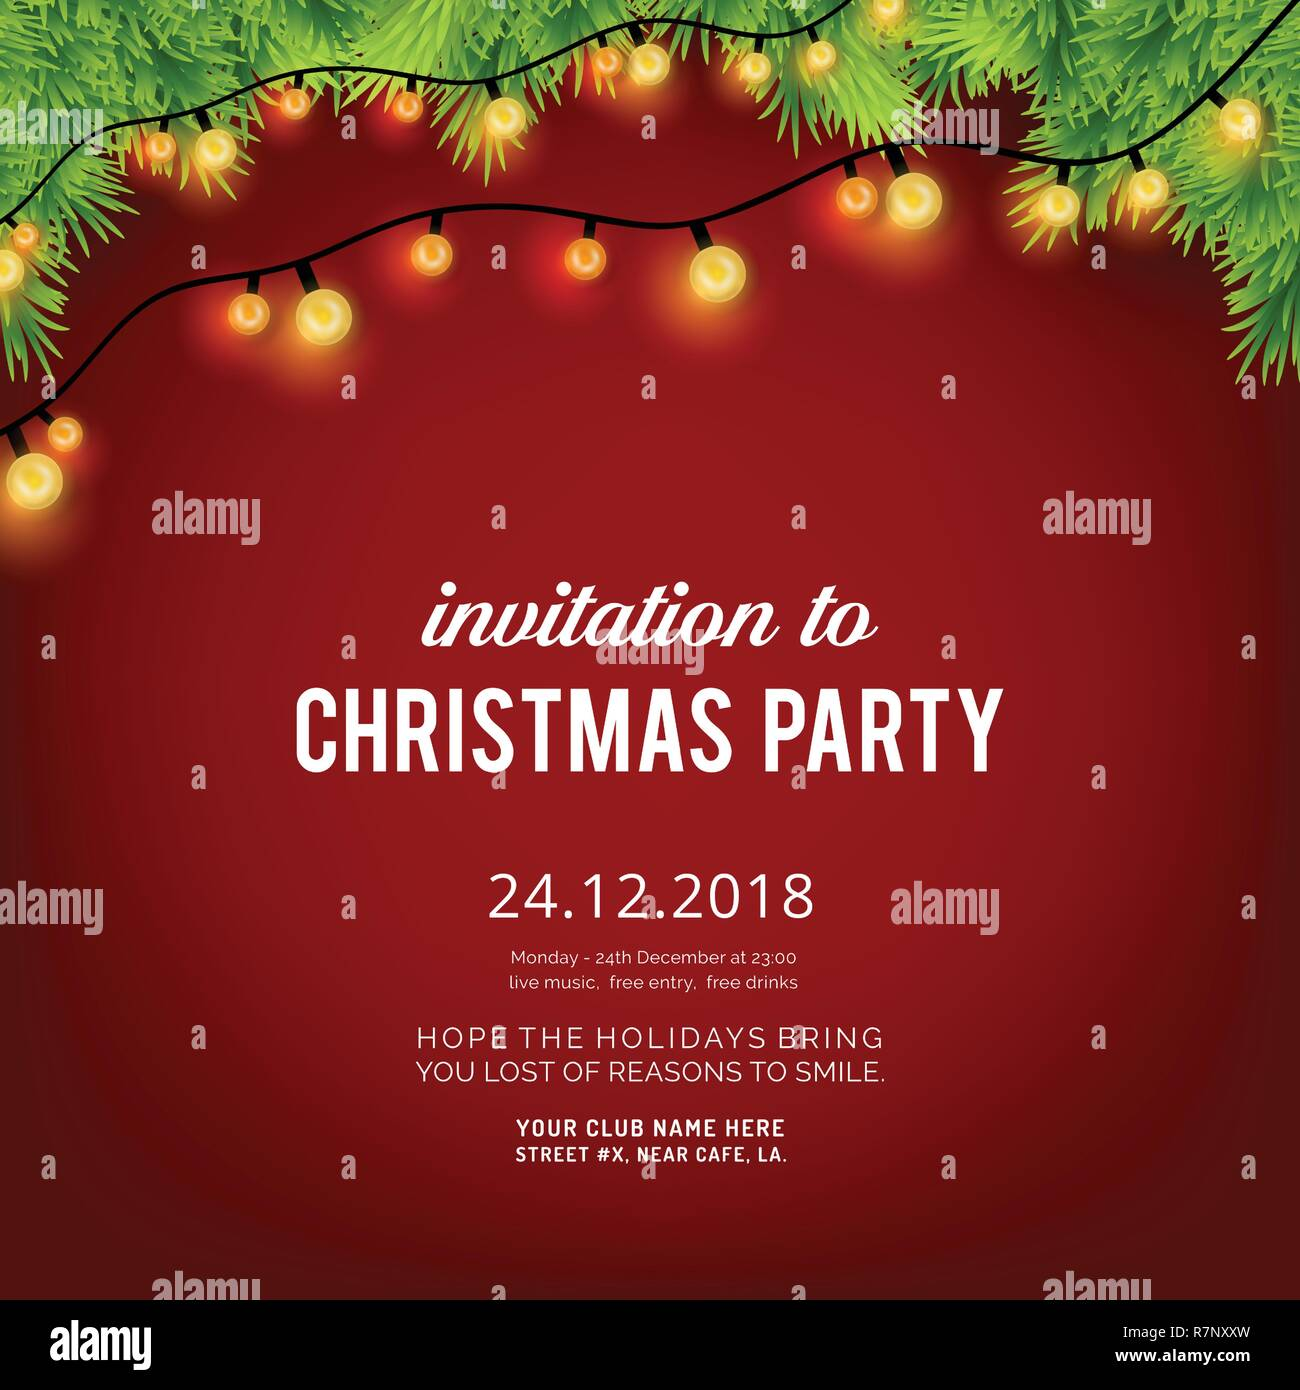 Merry Christmas Party Invitation Background Stock Vector Art